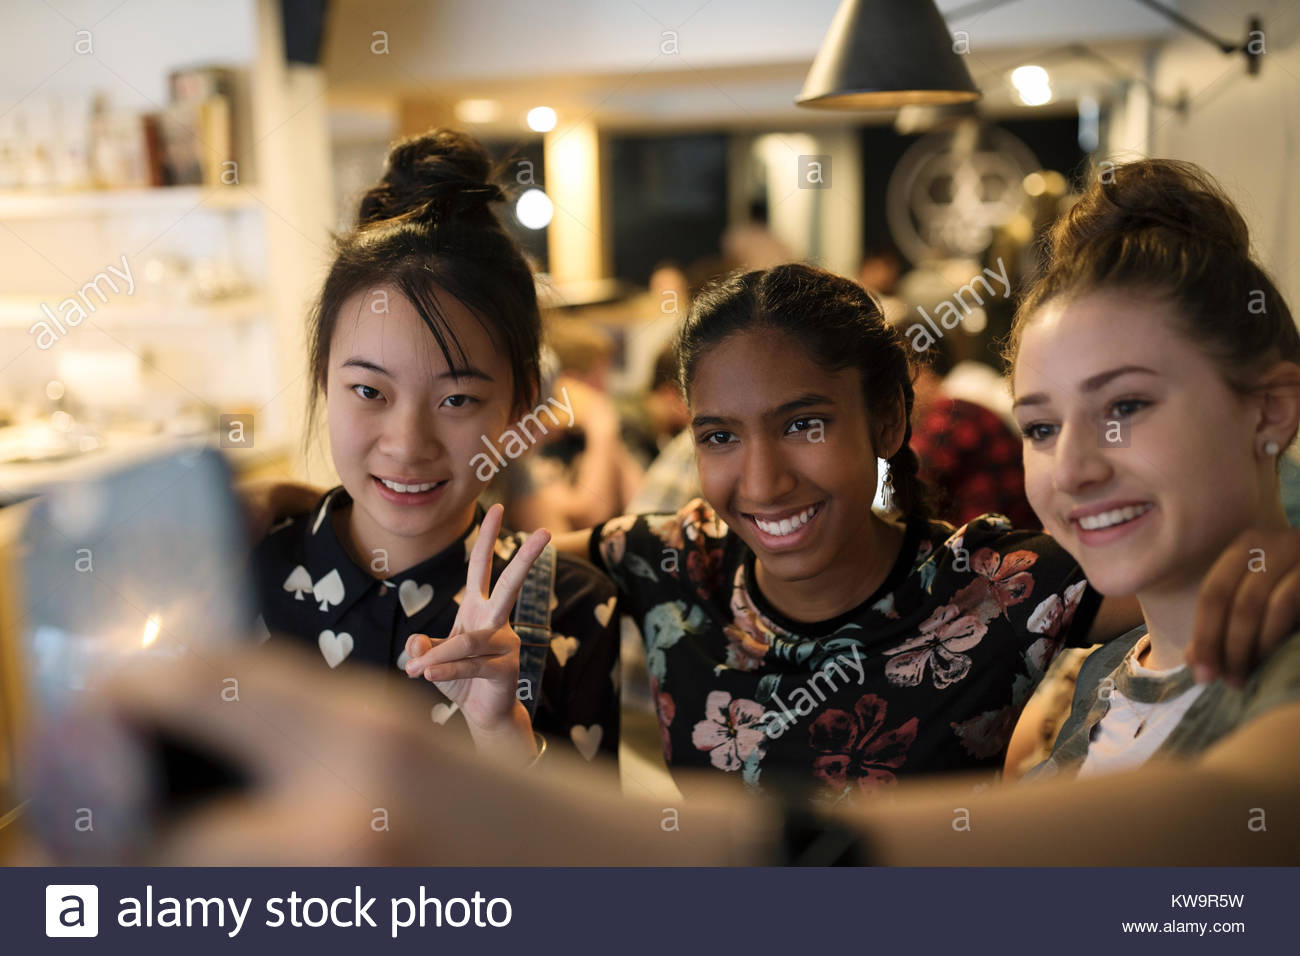 Smiling tween girl friends taking selfie with camera phone in cafe Stock Photo